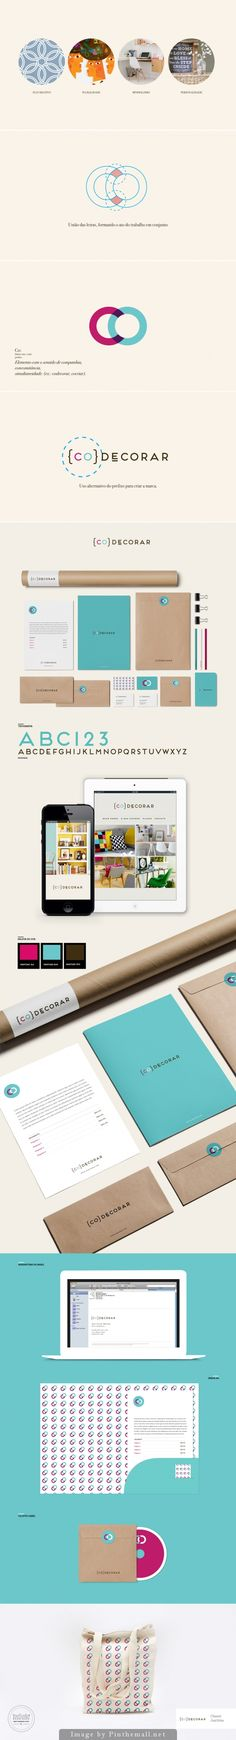 Codecorar by Isabela Rodrigues  Curated by Transition Marketing Services | Okanagan Small Business Brandng  Marketing Solutions. http://www.transitionmarketing.ca